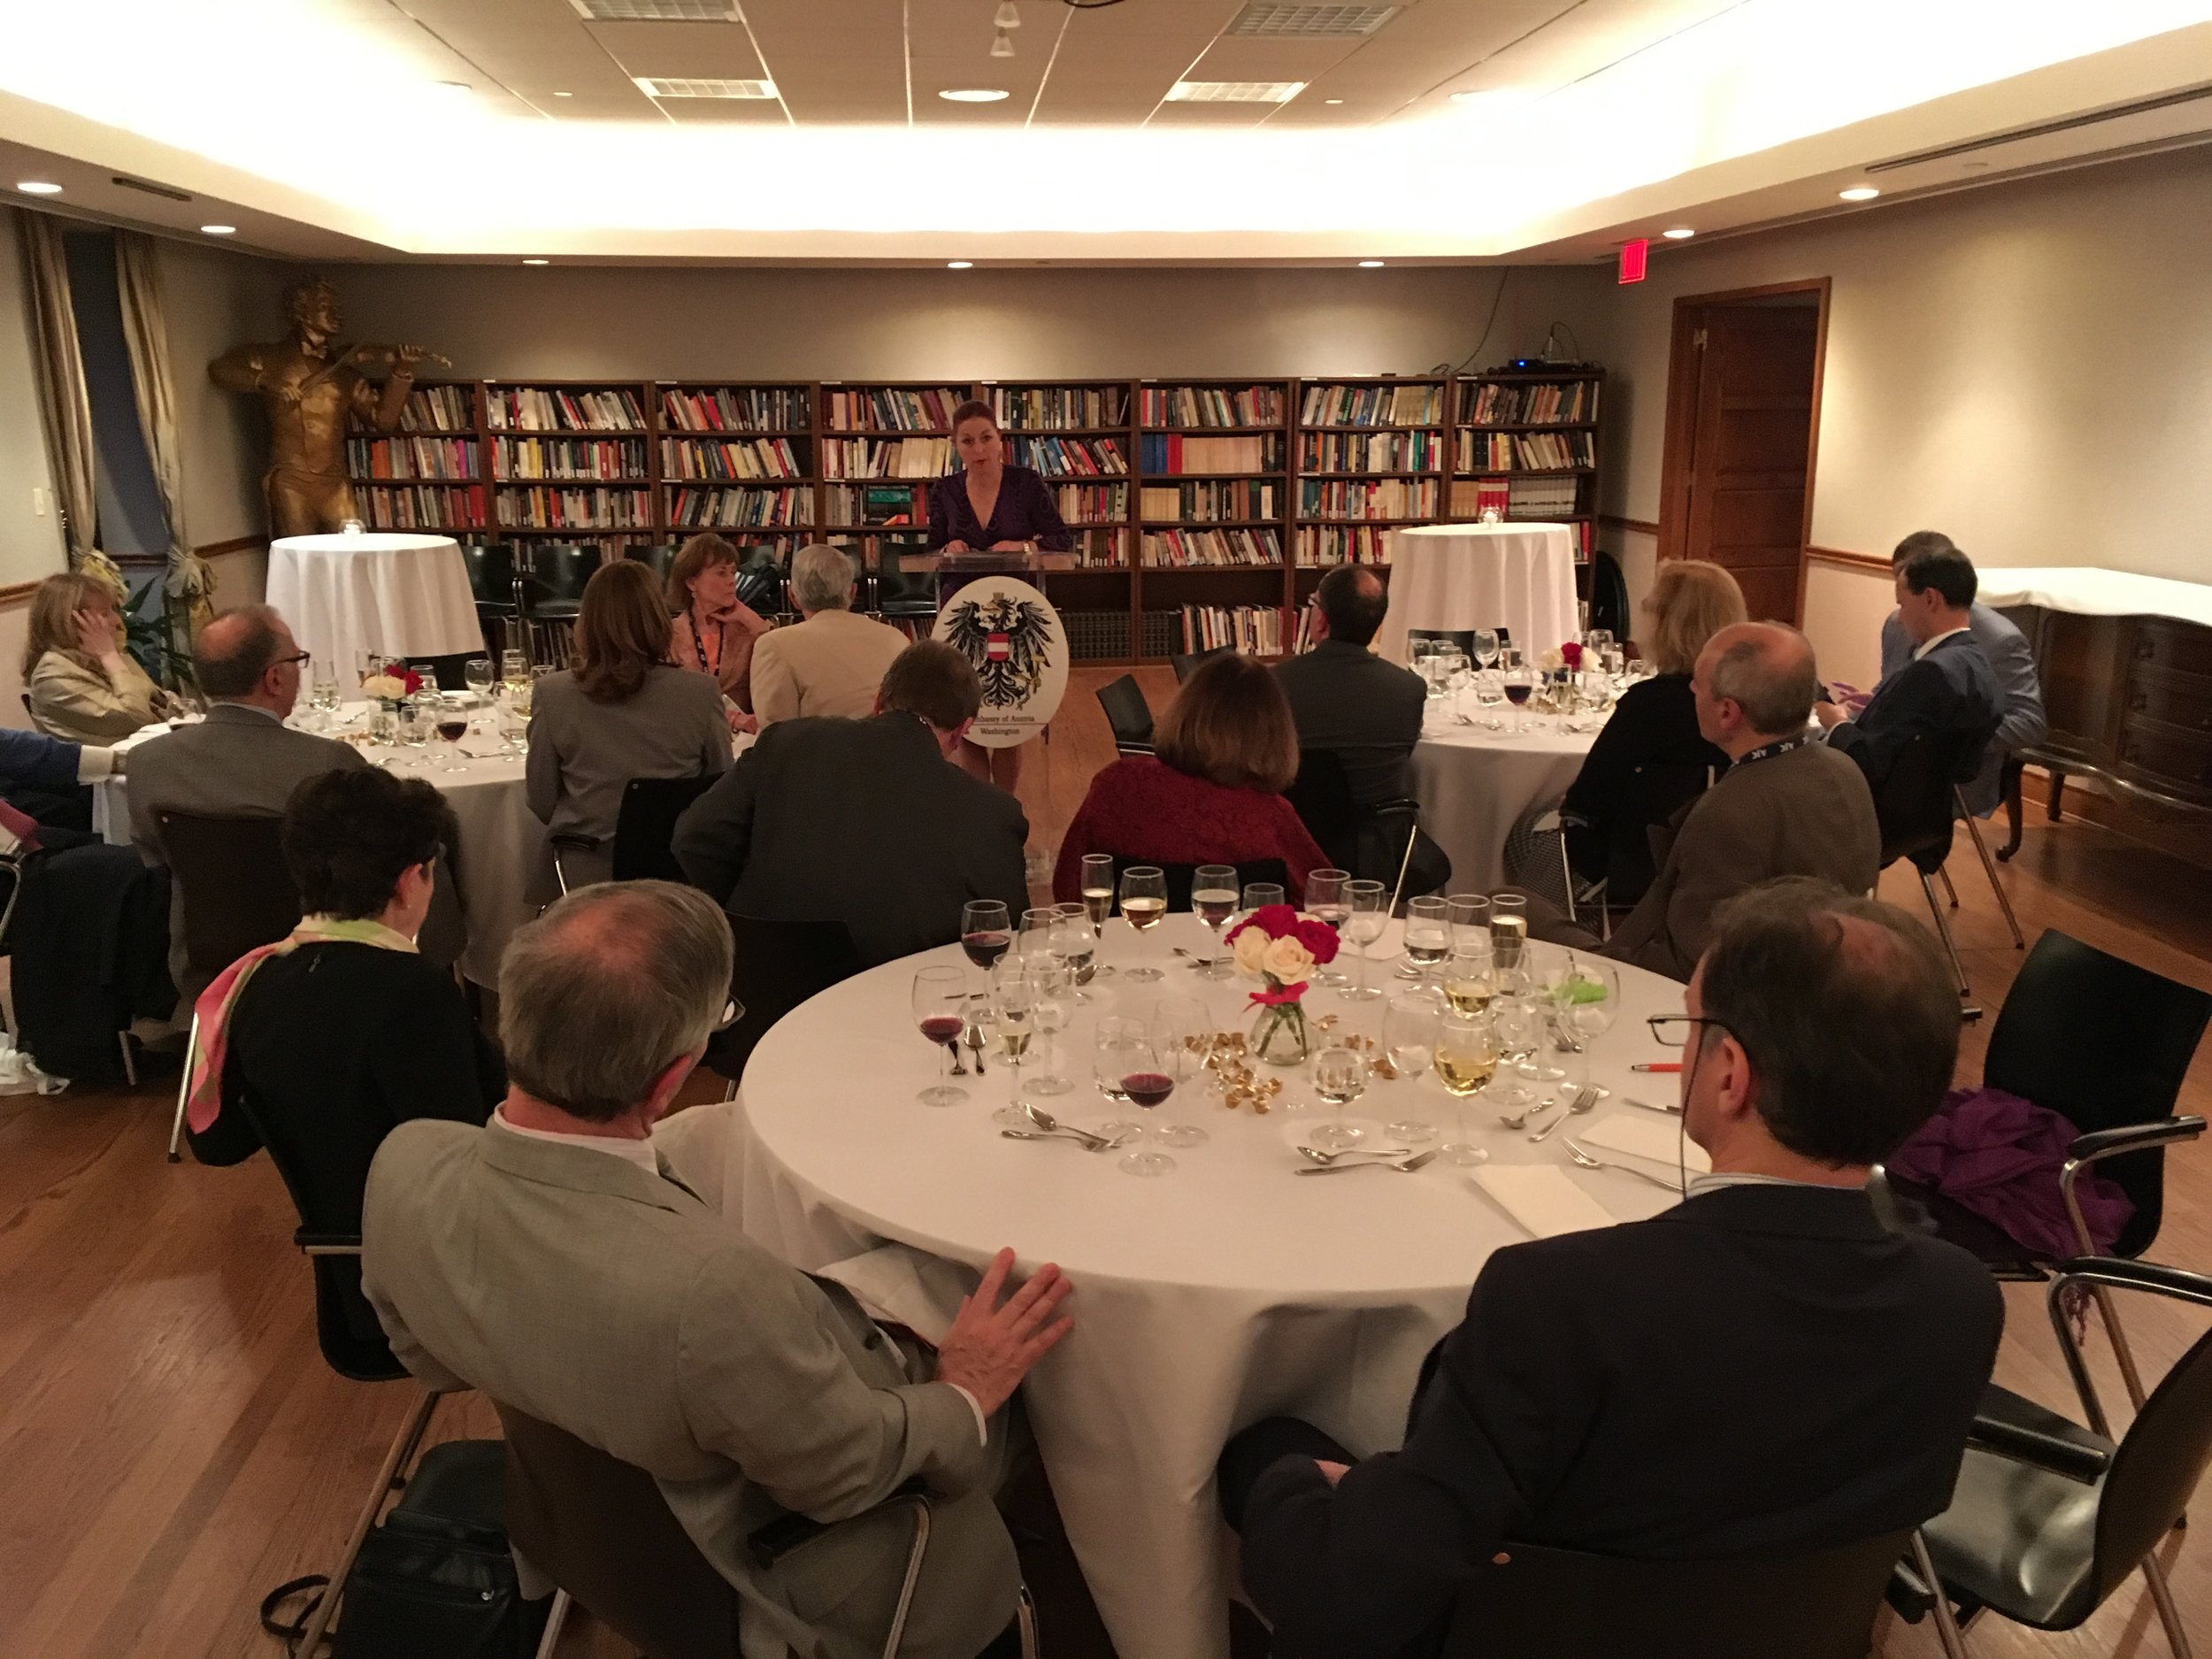 Hannah Lessing addresses the AJC dinner guests